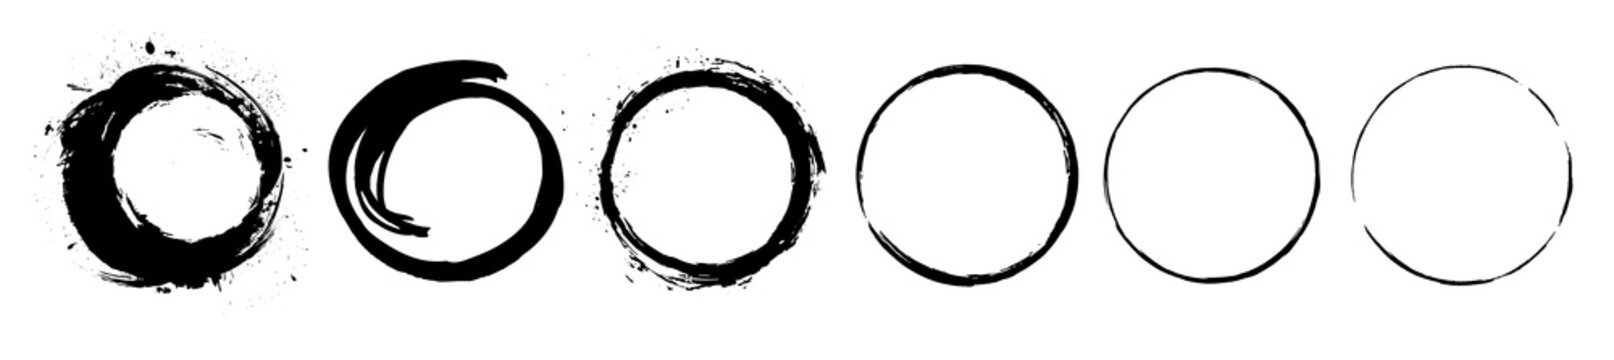 Abstract black paint brushstroke circles pack. Enso zen ink brush style symbol set.